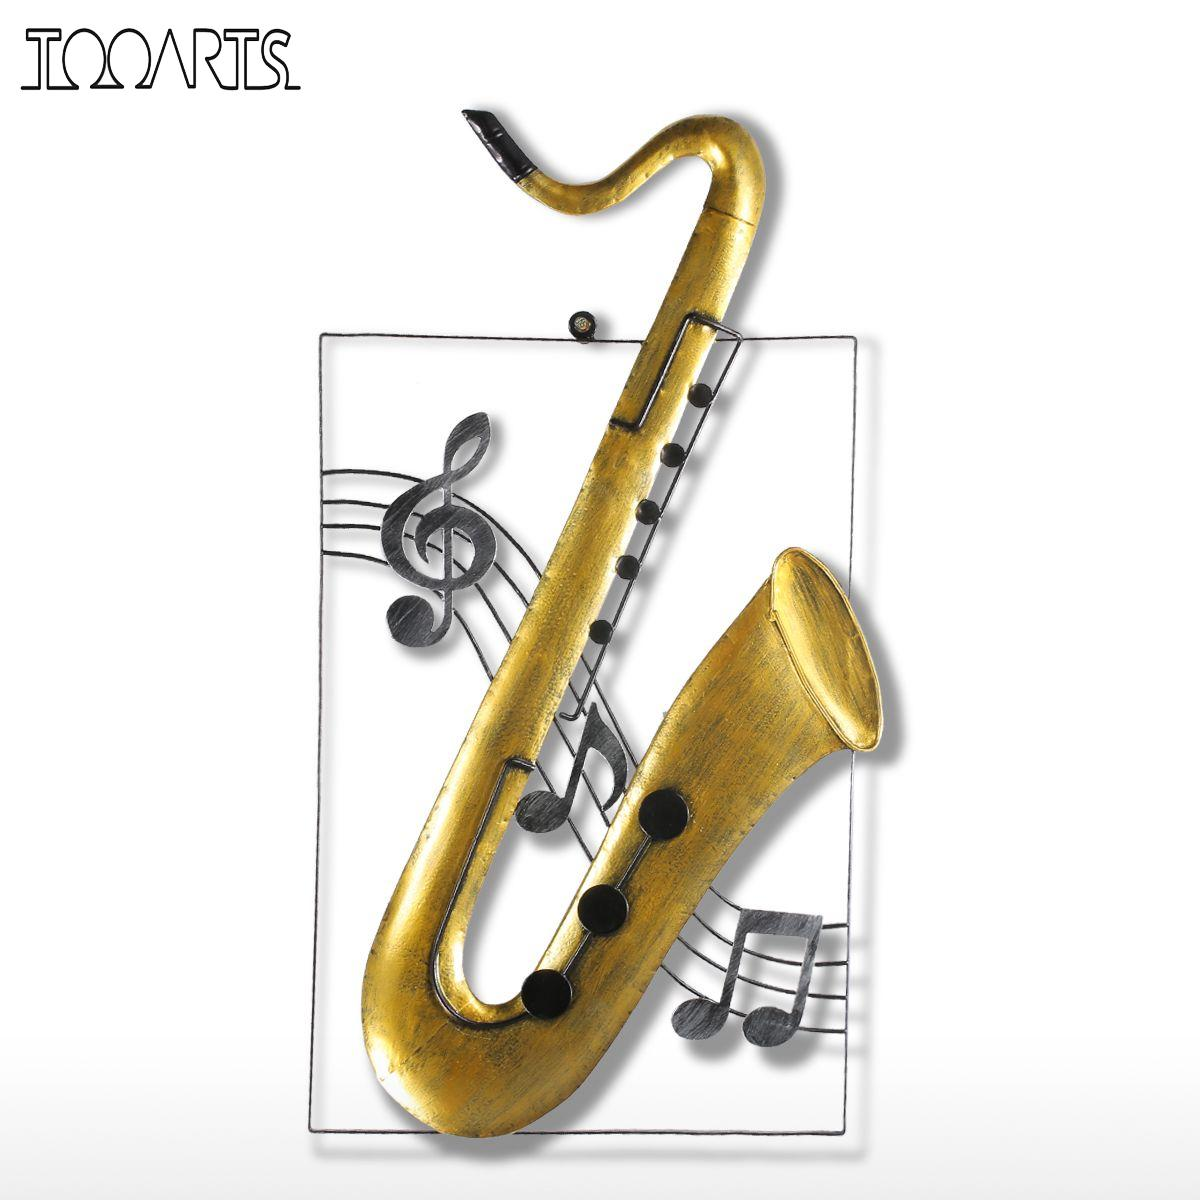 Violin christmas ornaments - Tooarts Saxophone Musical Elements Figurine Ornament Modern Metal Home Decor Themed Wall Hangings Decor Instrument Craft